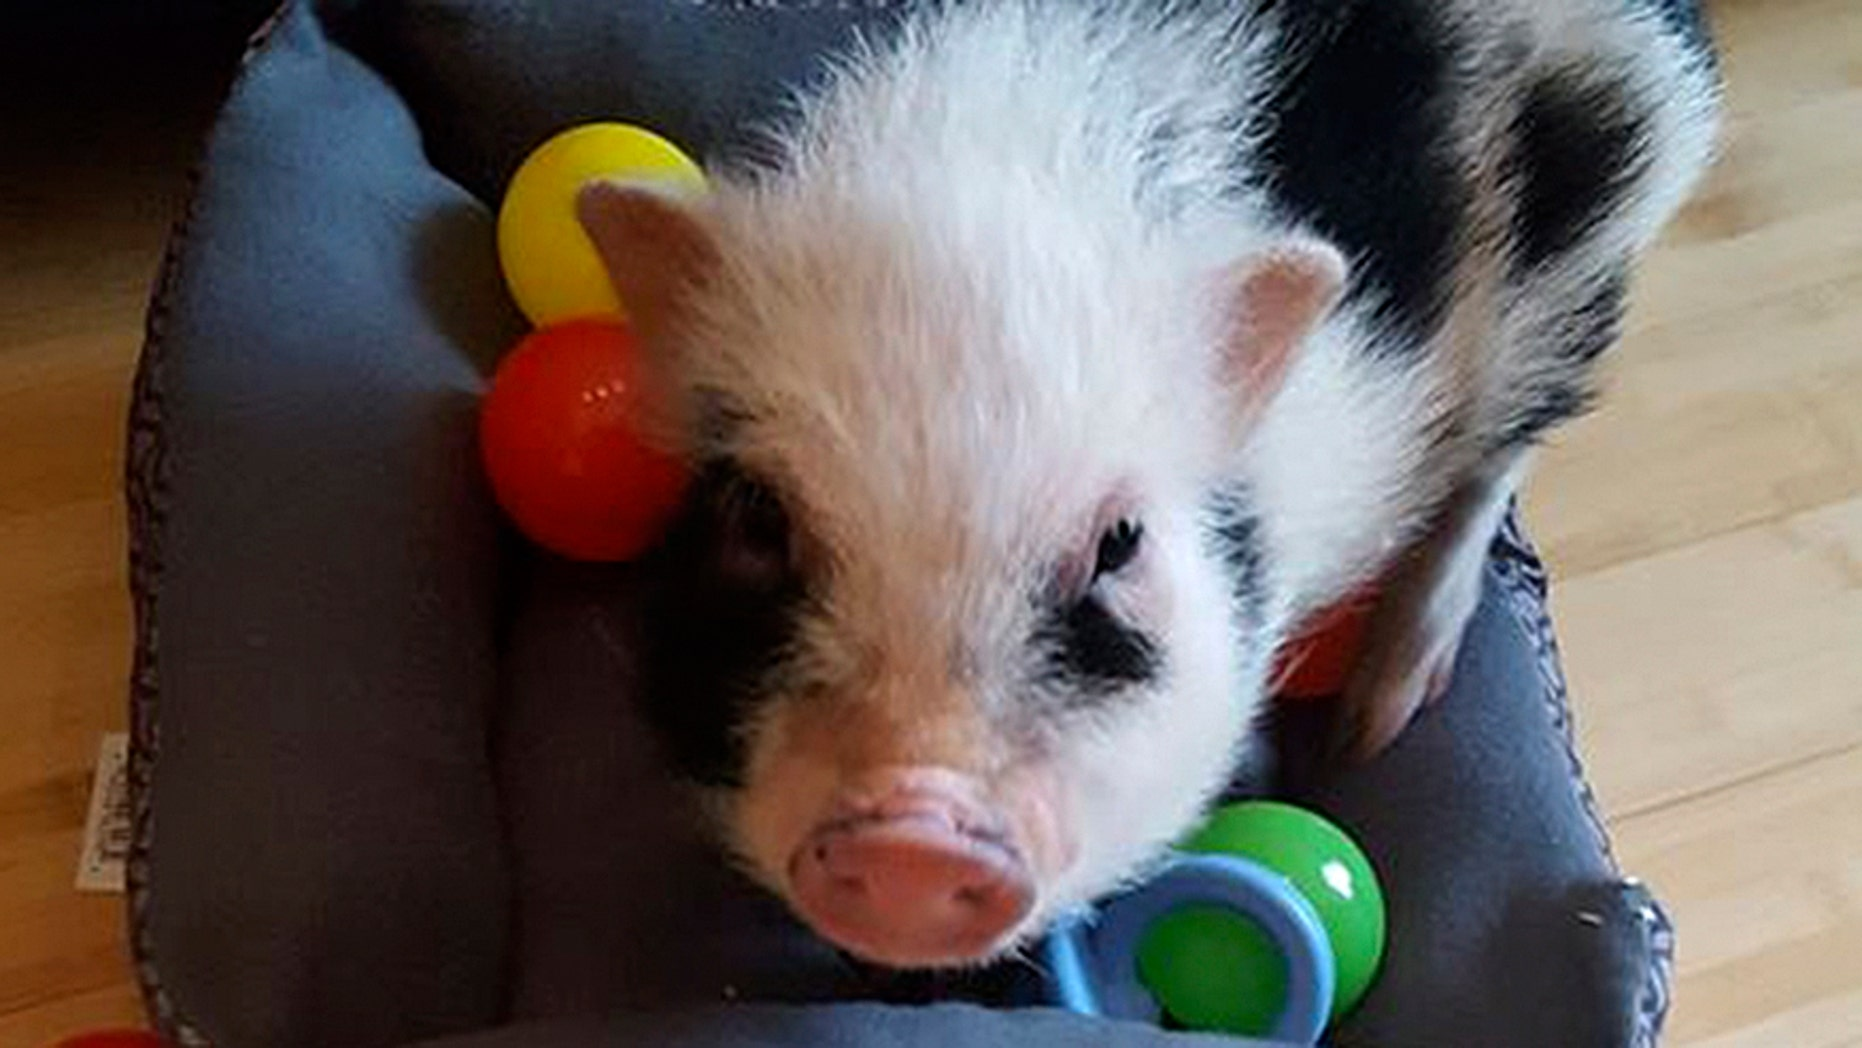 Cleveland police are searching for a 15-pound mini pet pig that was stolen.